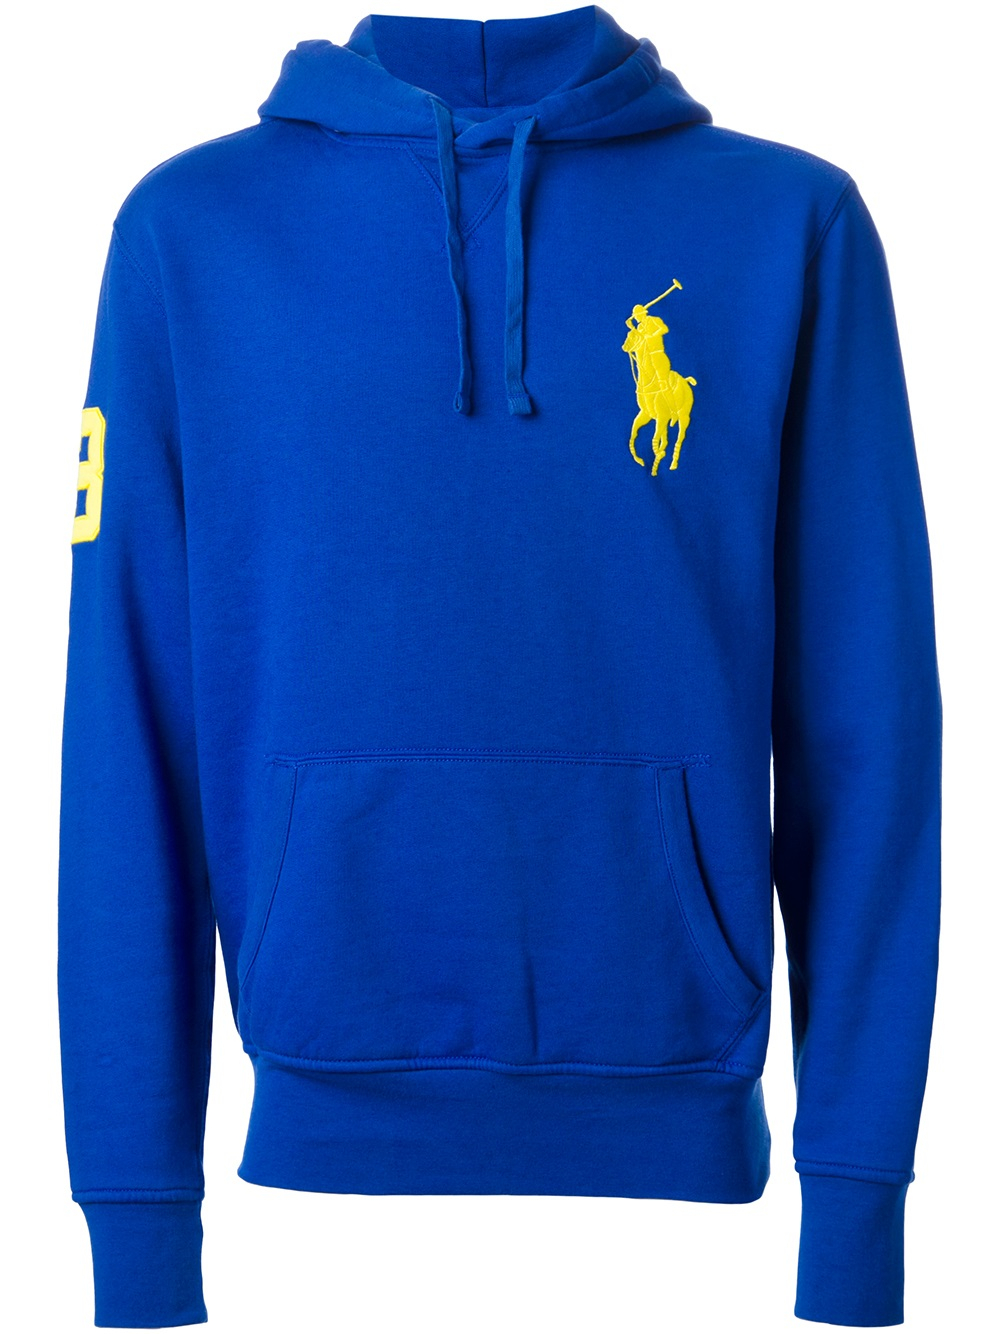 lyst polo ralph lauren logo detail hoodie in blue for men. Black Bedroom Furniture Sets. Home Design Ideas